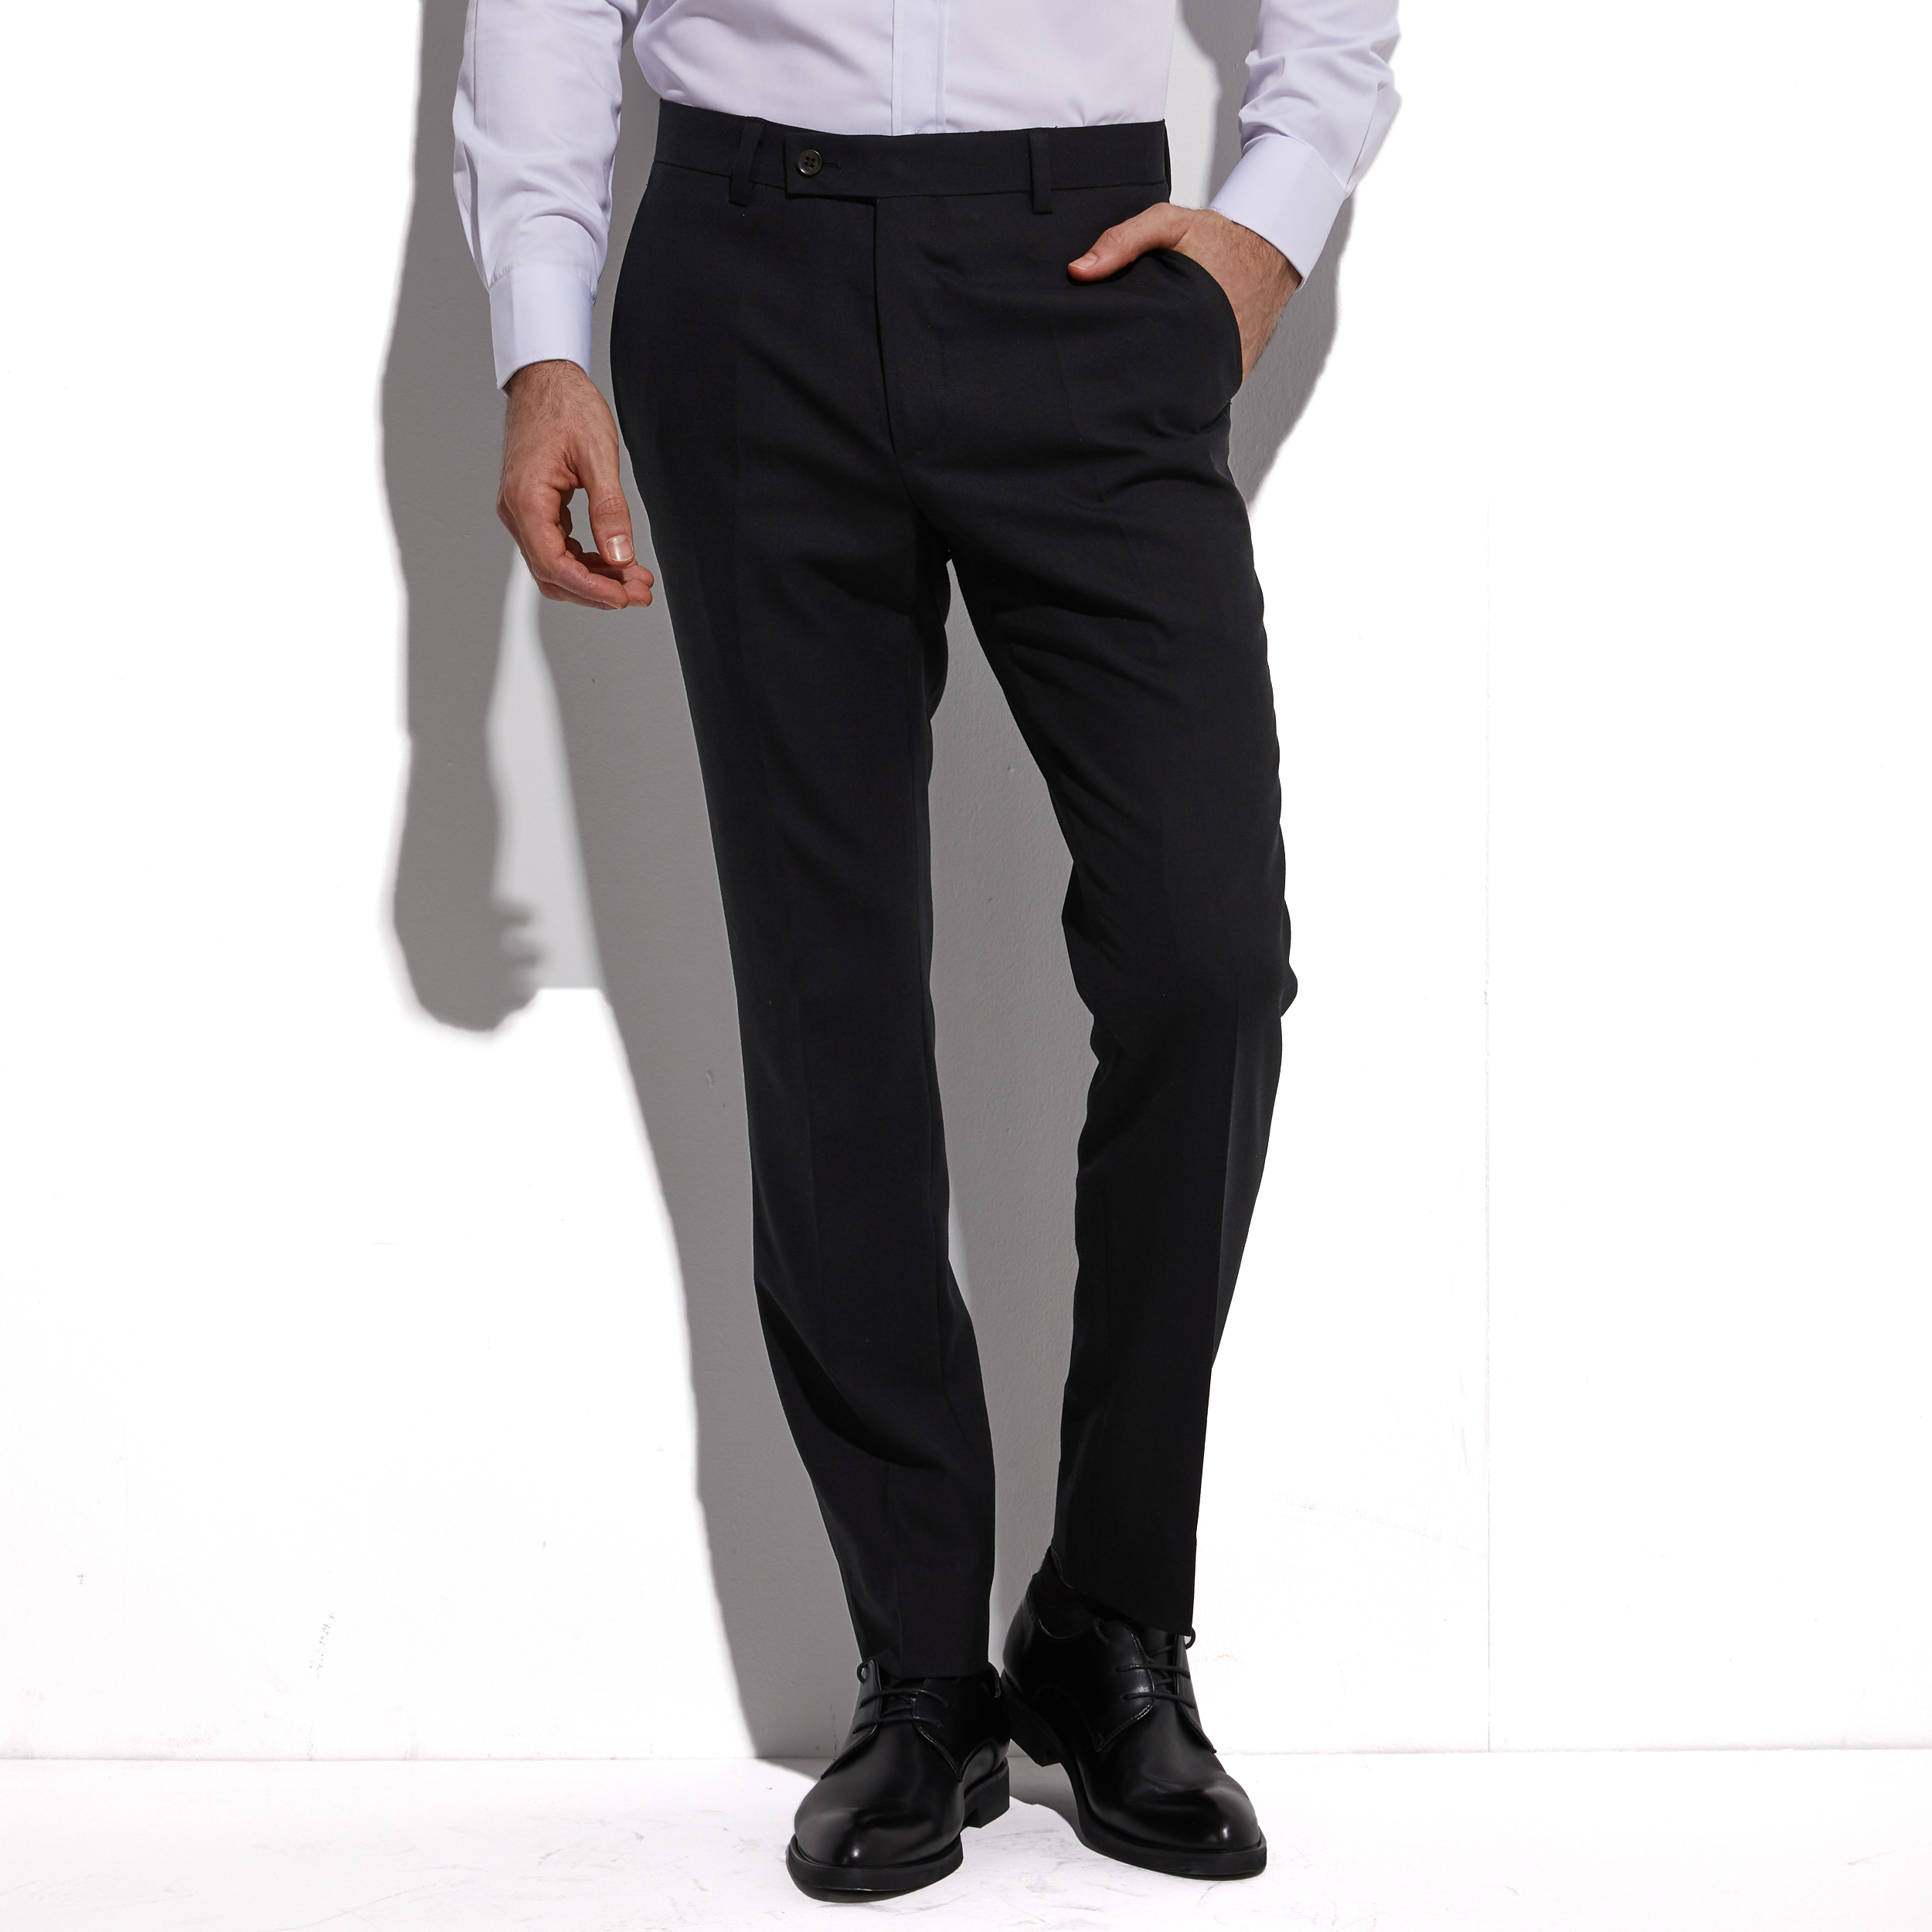 2020 Stretchy Dress Pants Custom Made Slim Fit Black Silk Wool Blend Trouser, Highly Comfortable Fabric, More Freedom For Action